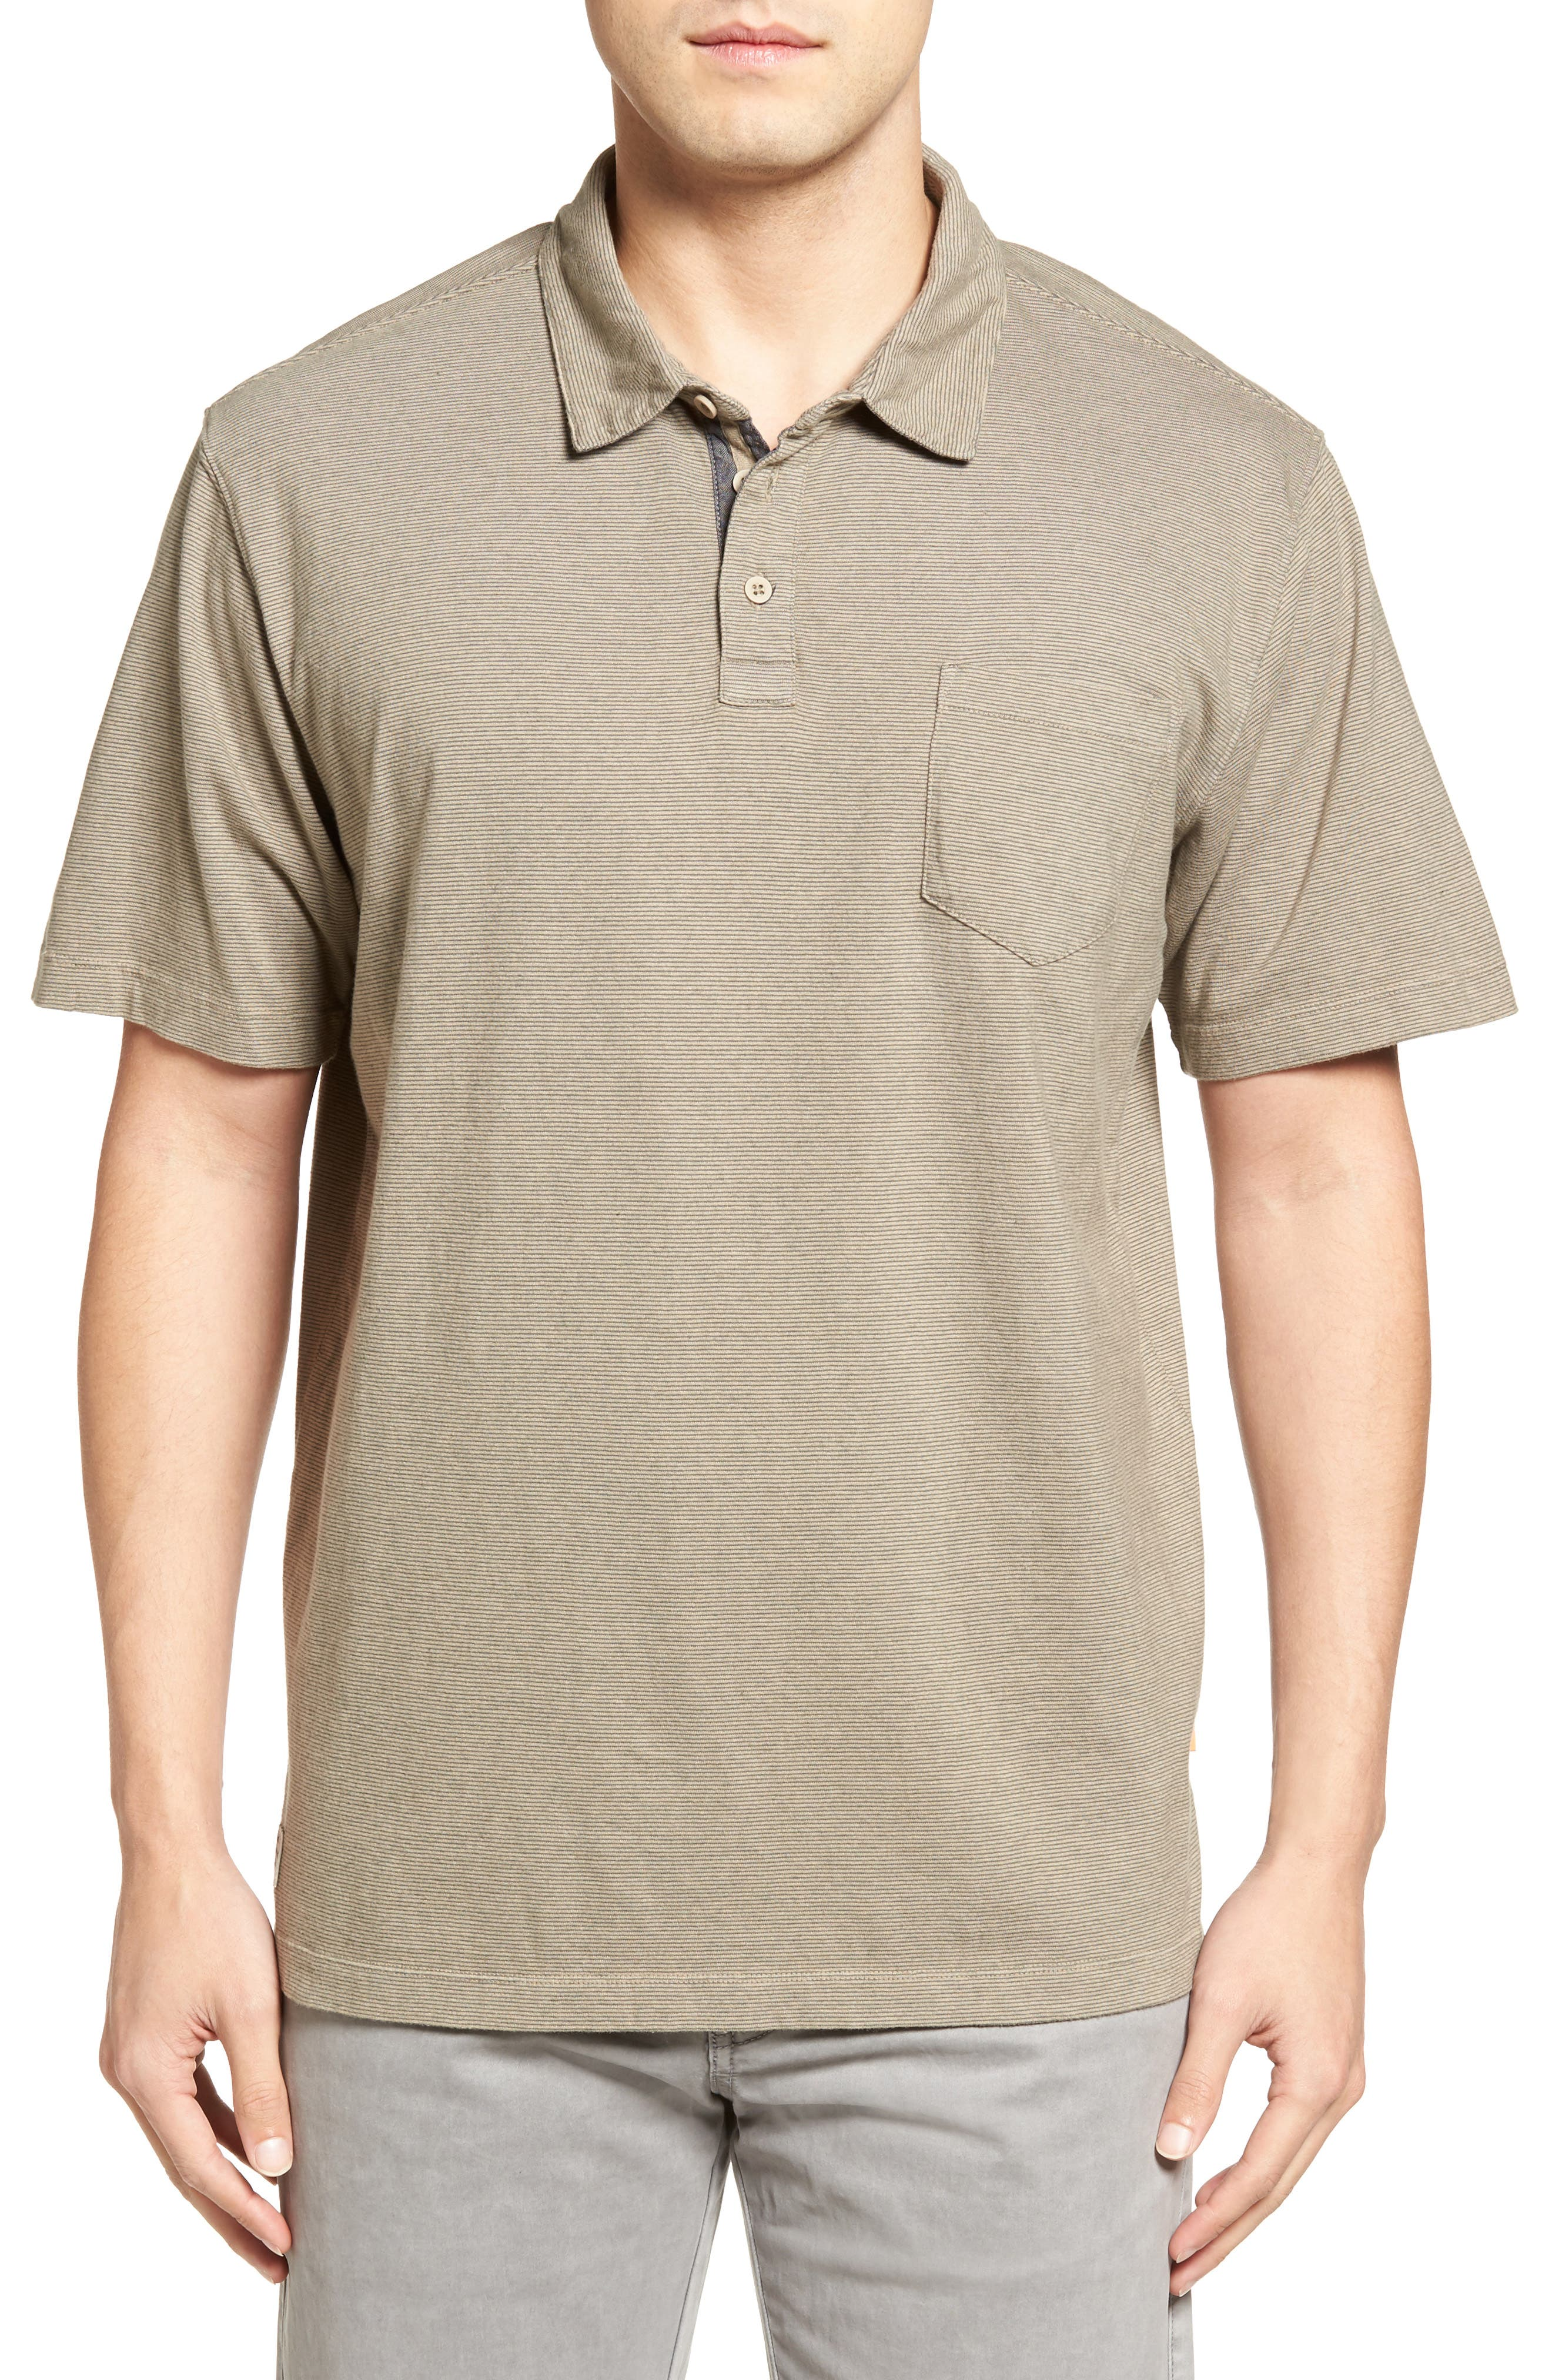 Quiksilver Strolo 5 Cotton Polo